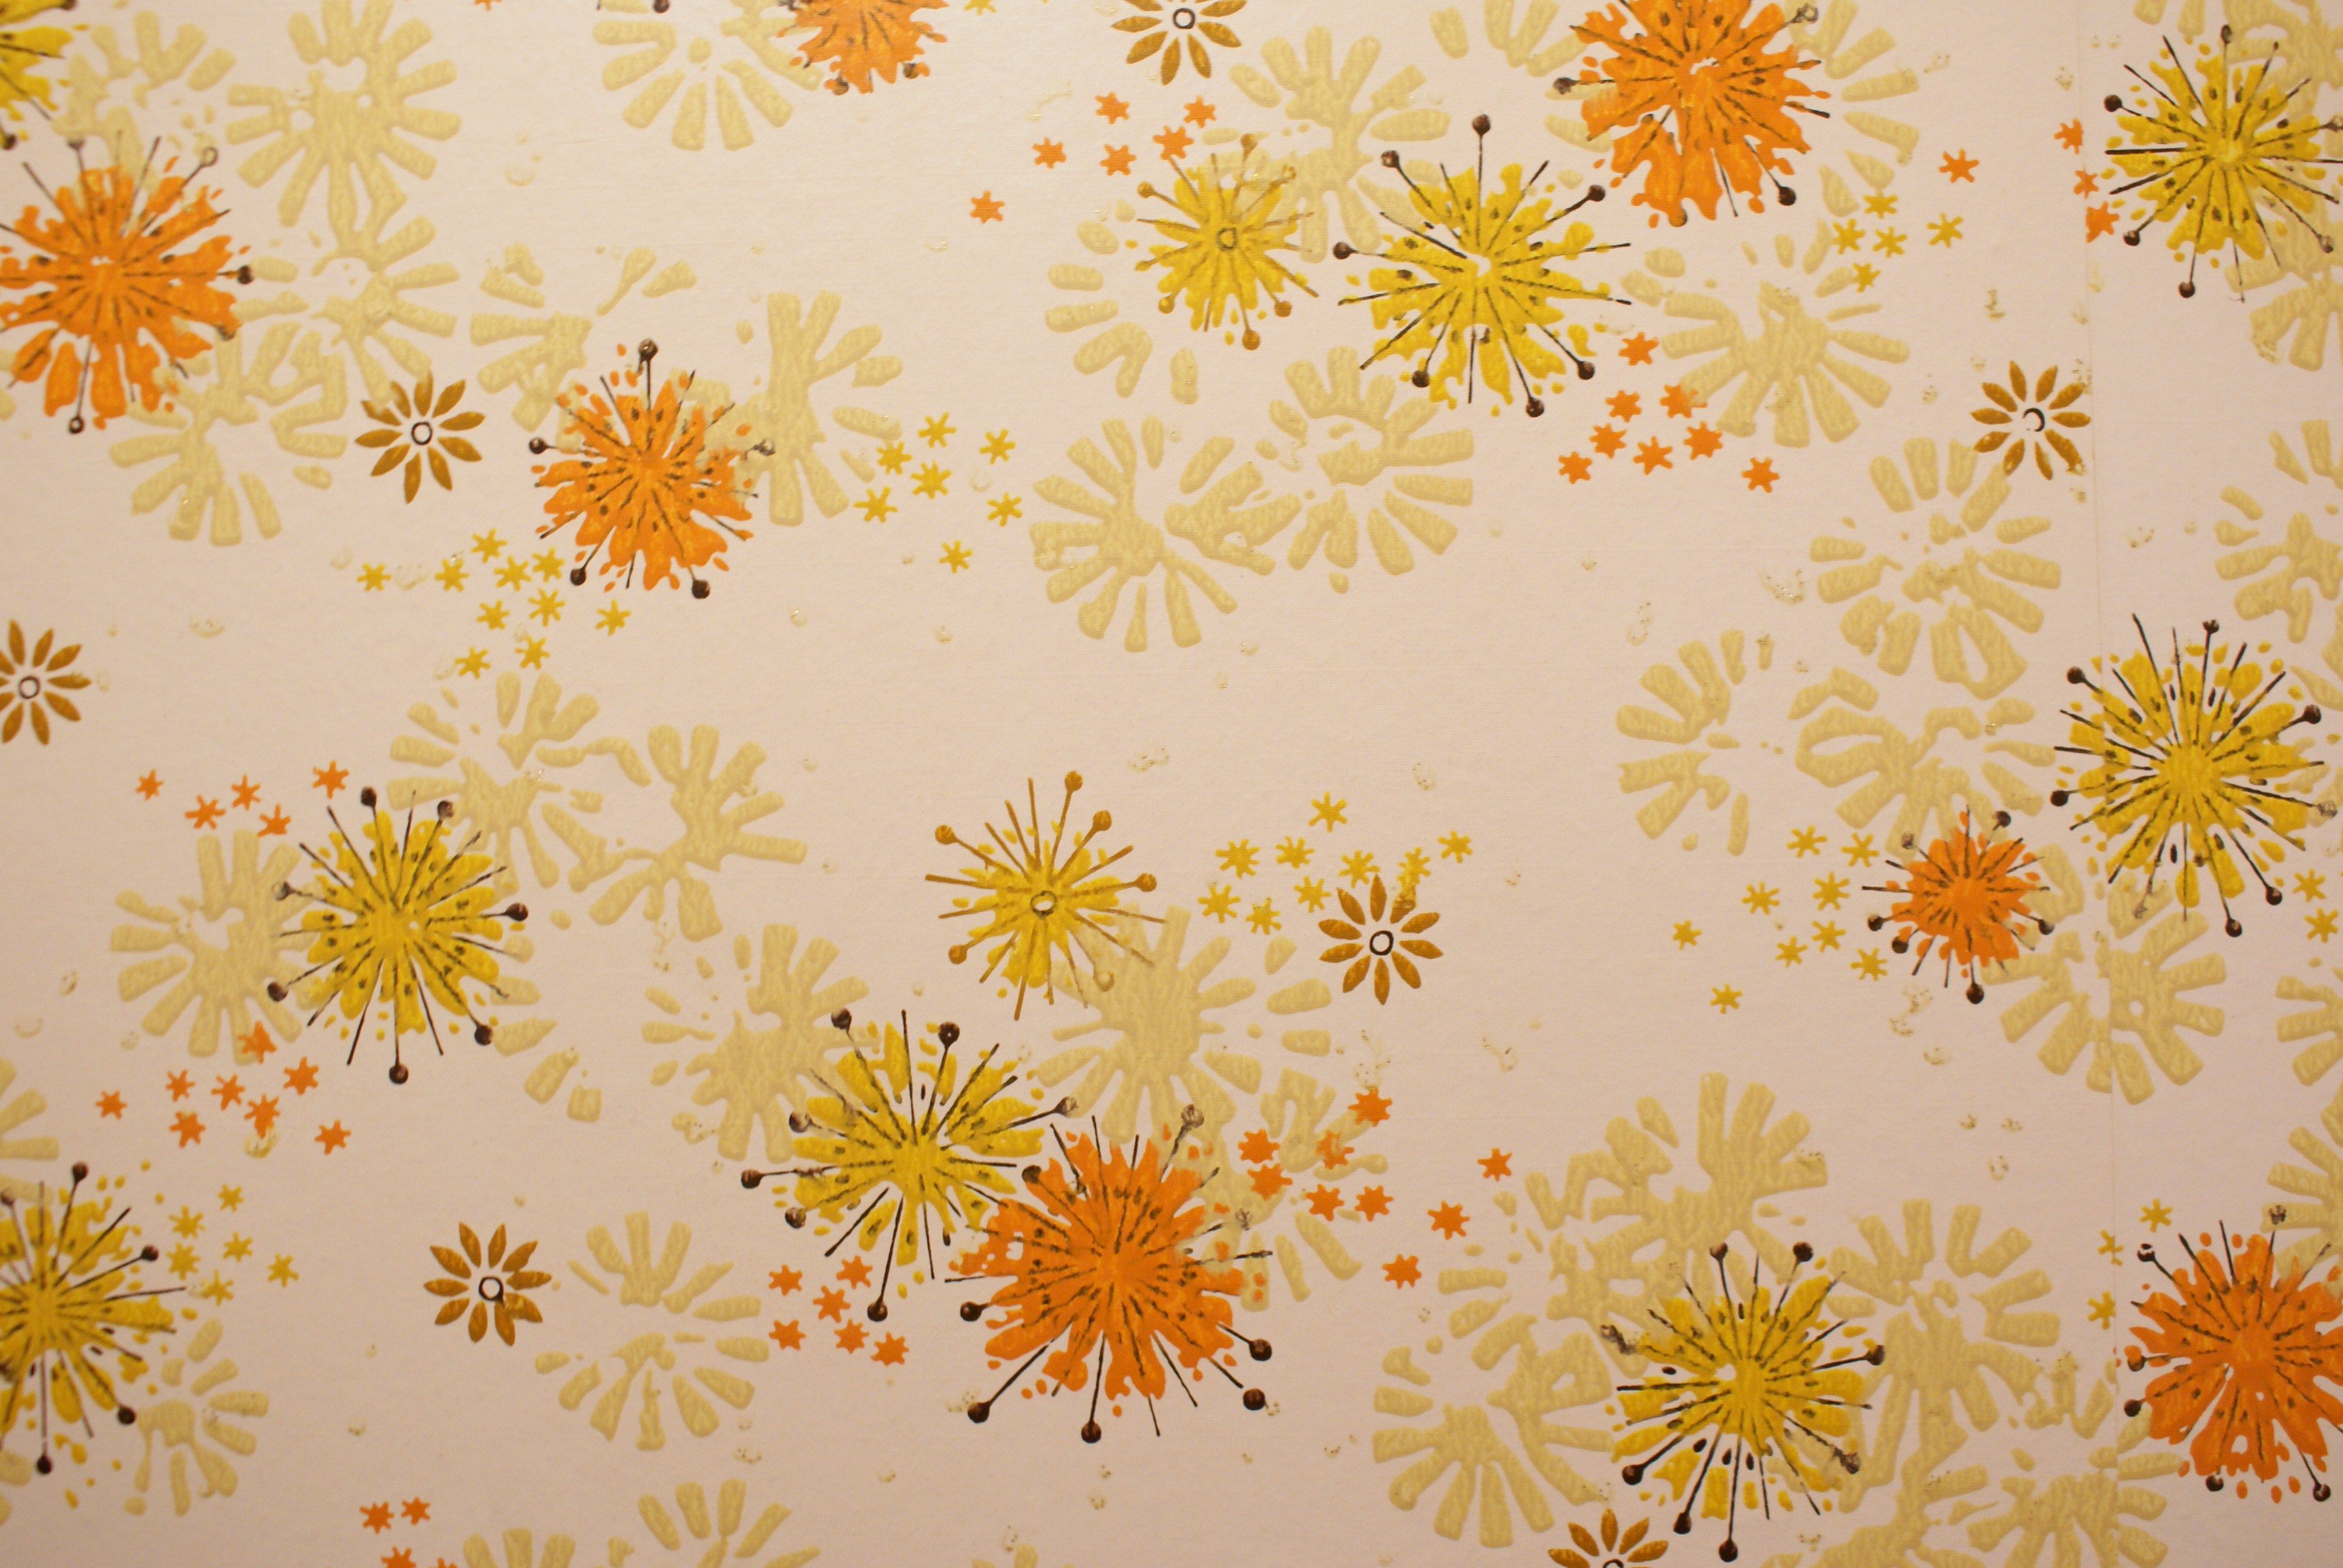 Vintage Wallpaper vintage orange wallpaper retro 70s 1970s yellow 3872x2592